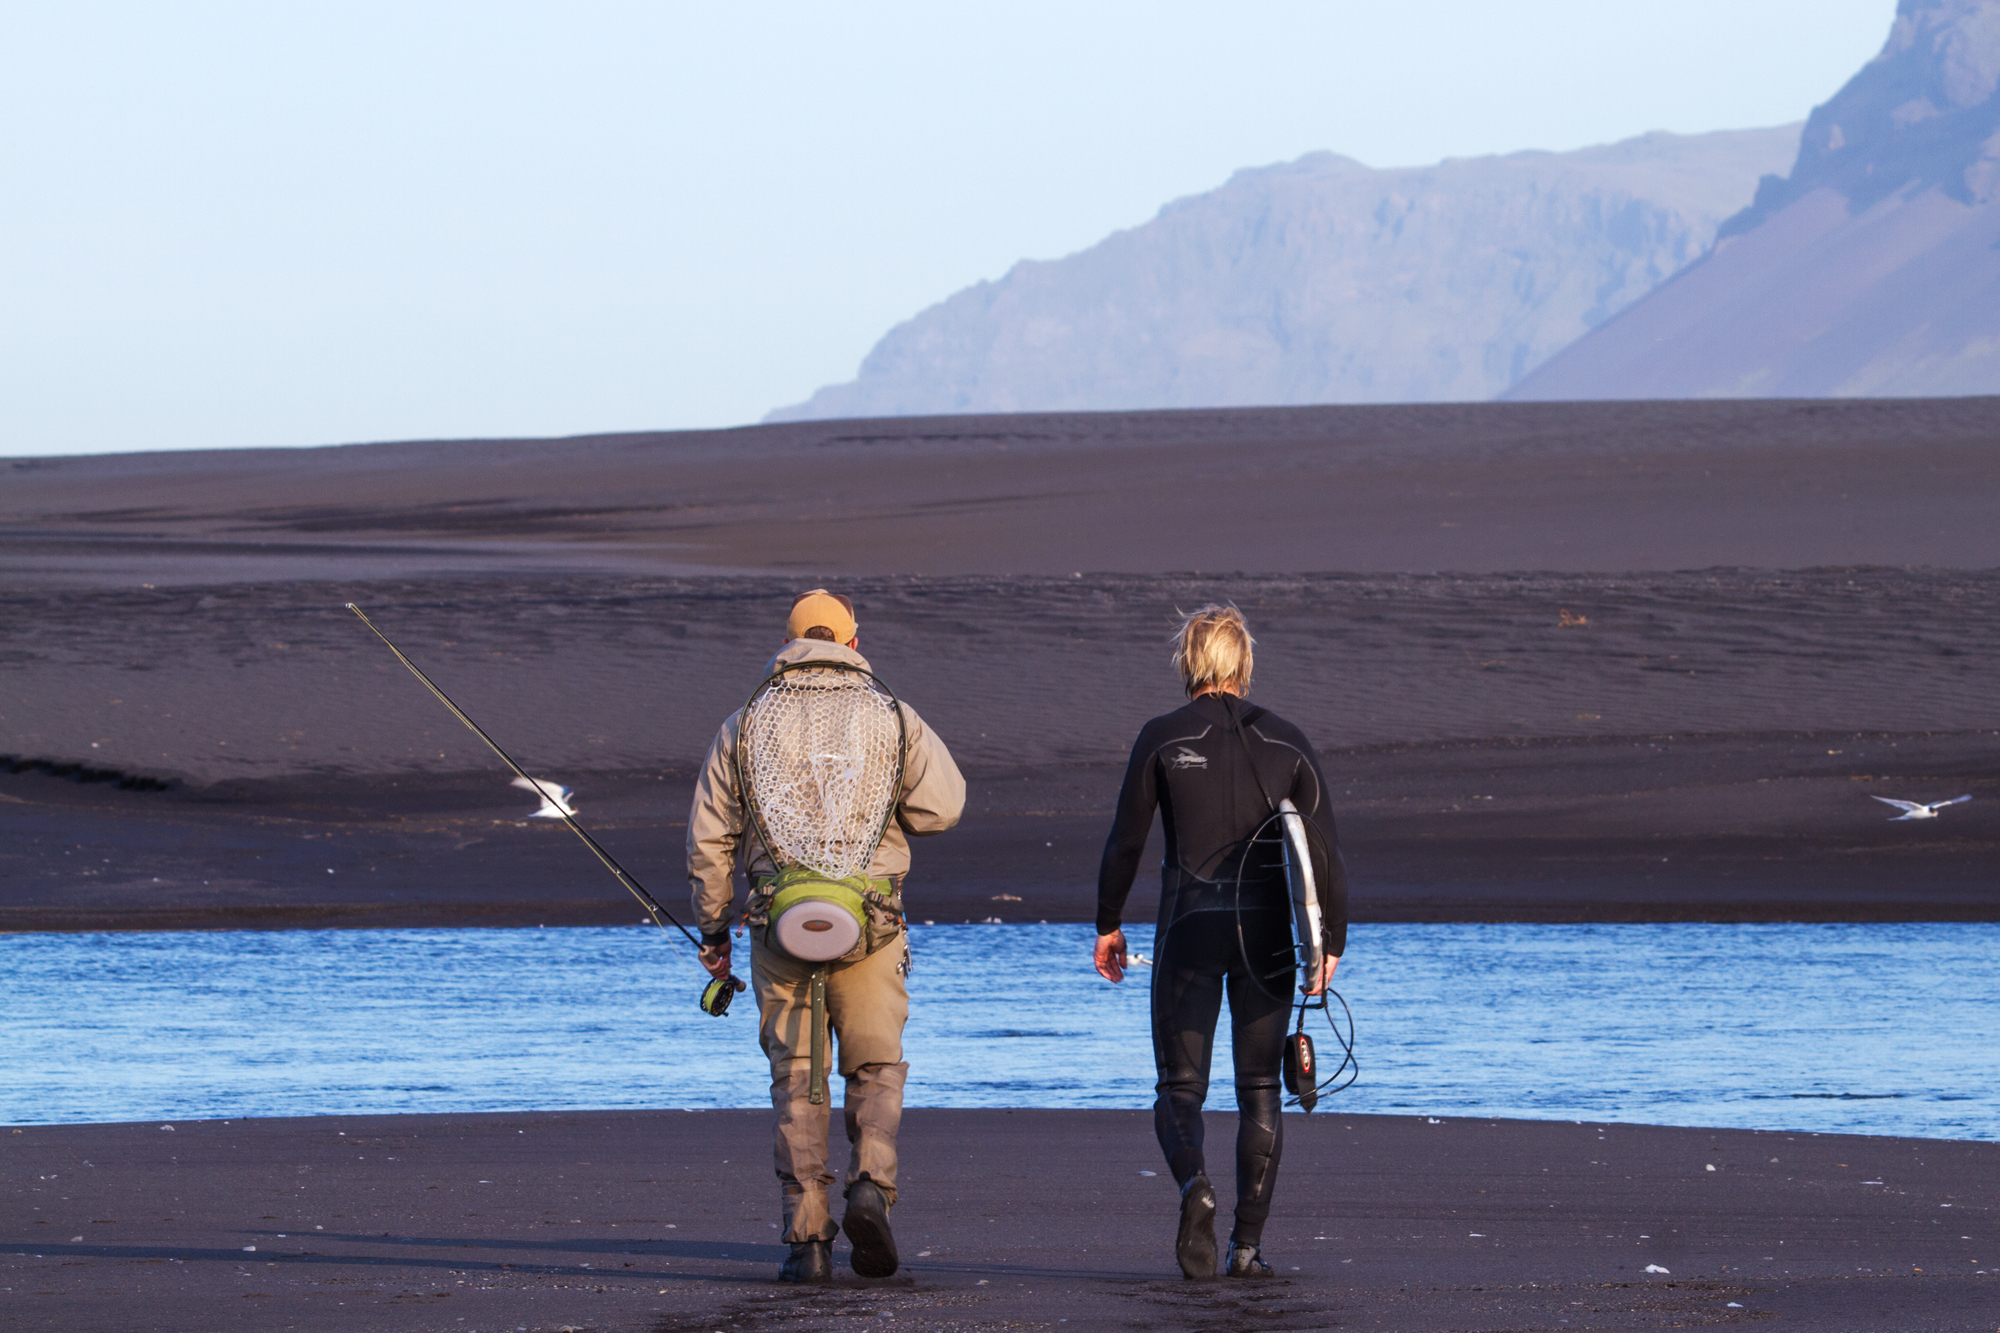 """a surfer and a fisherman walk along the beach in Iceland, from the movie """"YOW: Icelandic for Yes"""""""